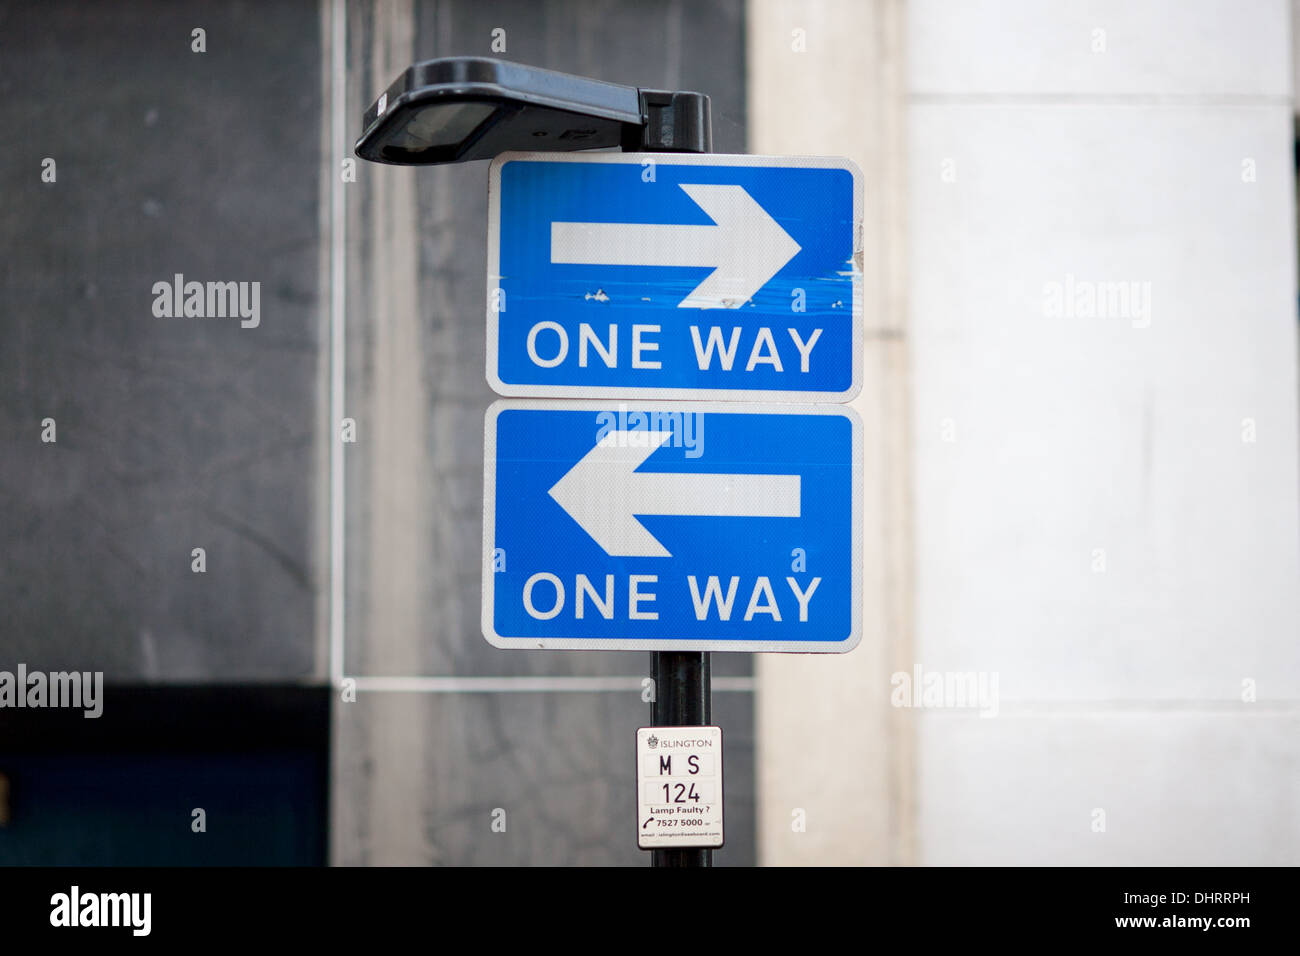 Two one-way traffic signs mounted one above the other but both pointing in opposite directions. London, UK. Stock Photo